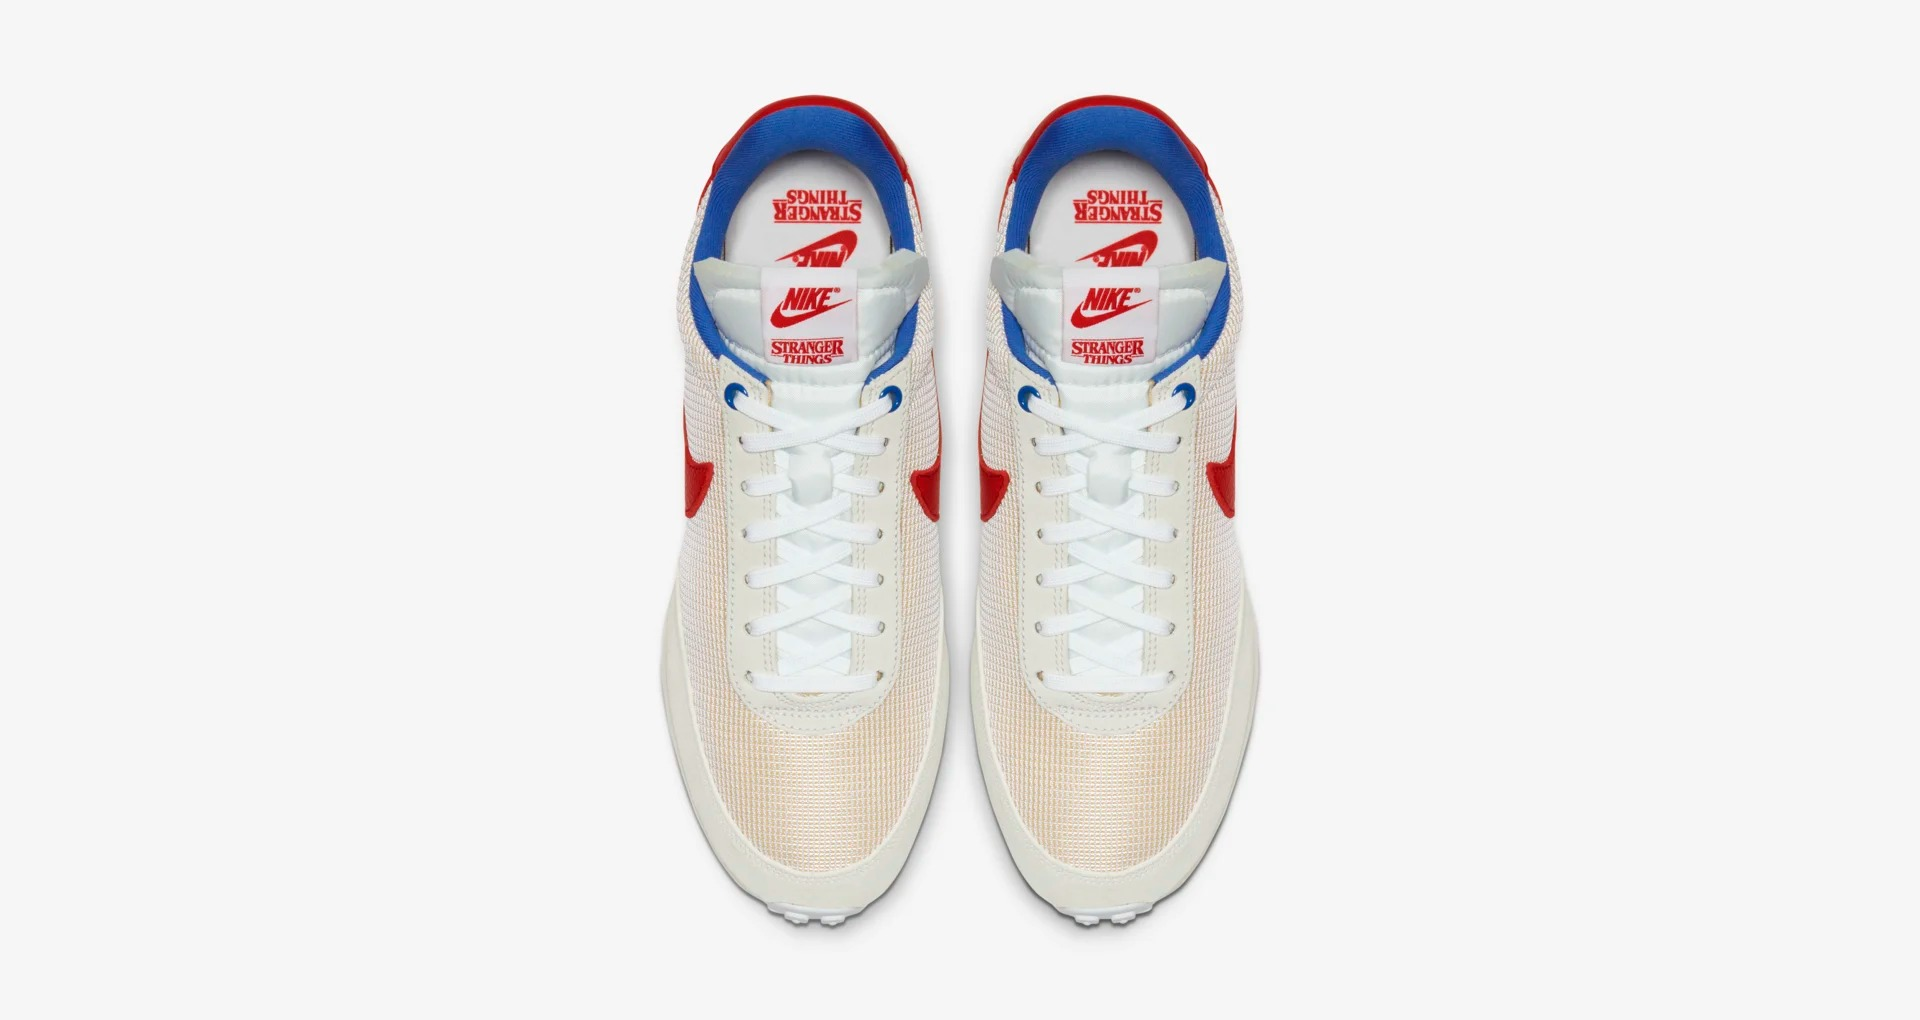 CK1905 100 Stranger Things x Nike Air Tailwind 79 3